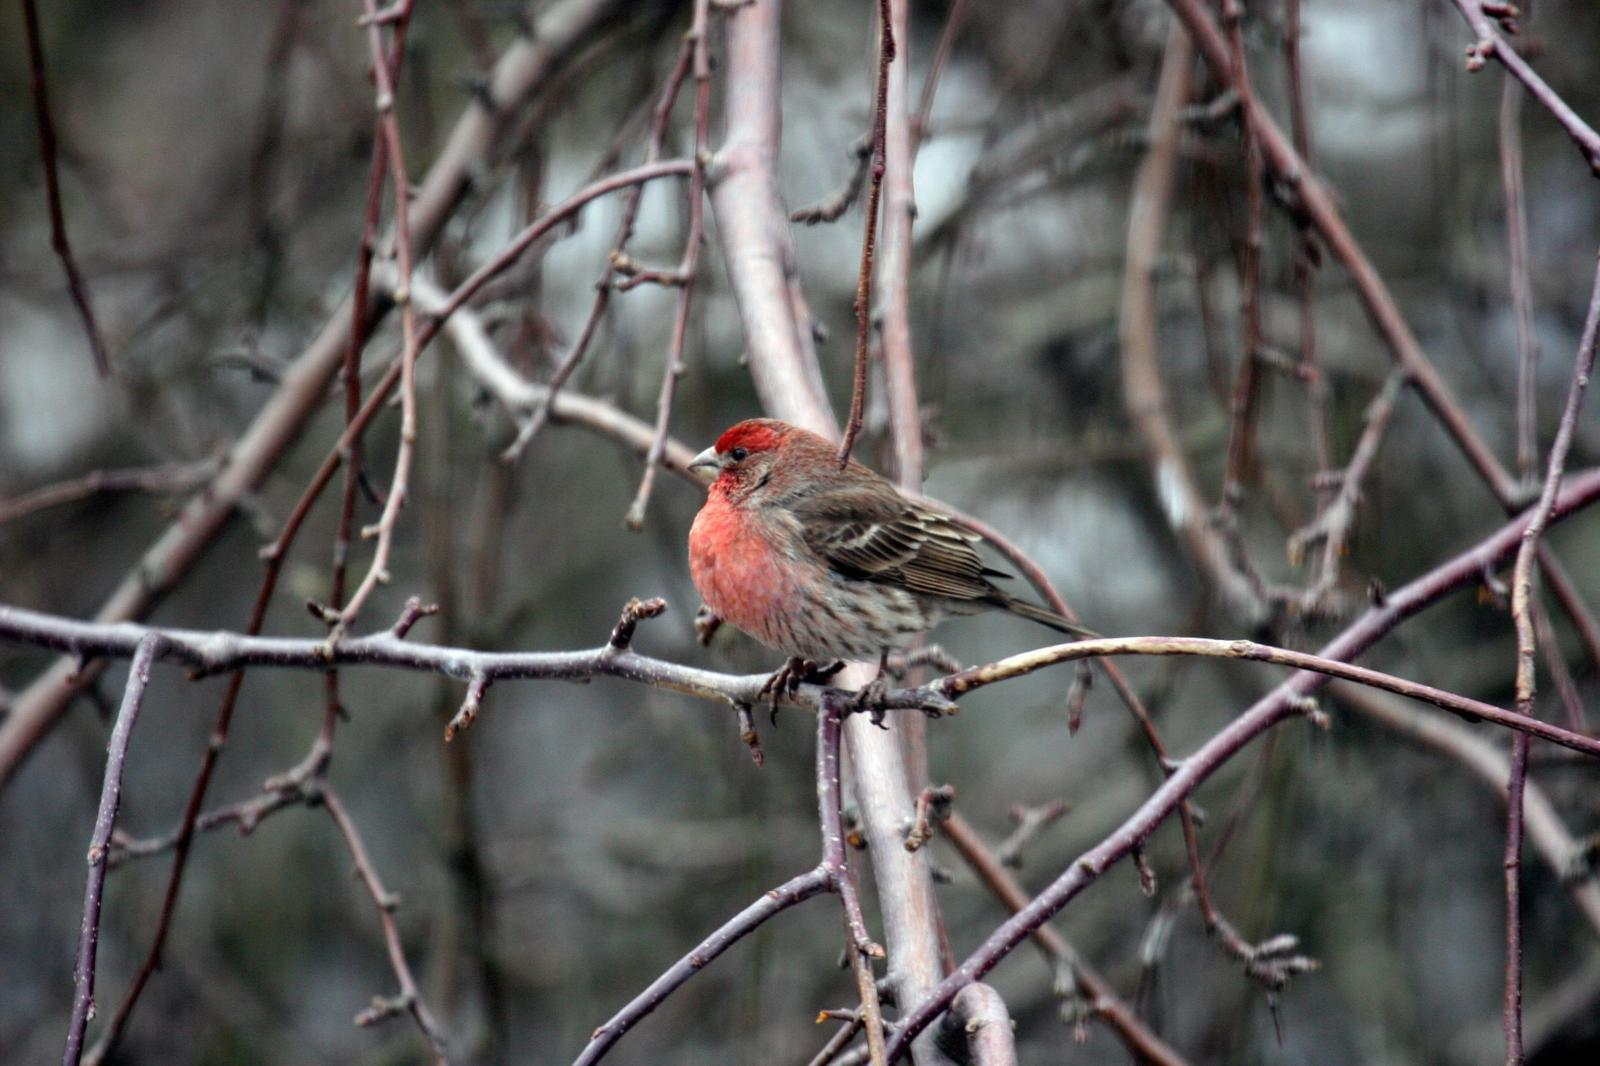 House Finch Photo by Roseanne CALECA